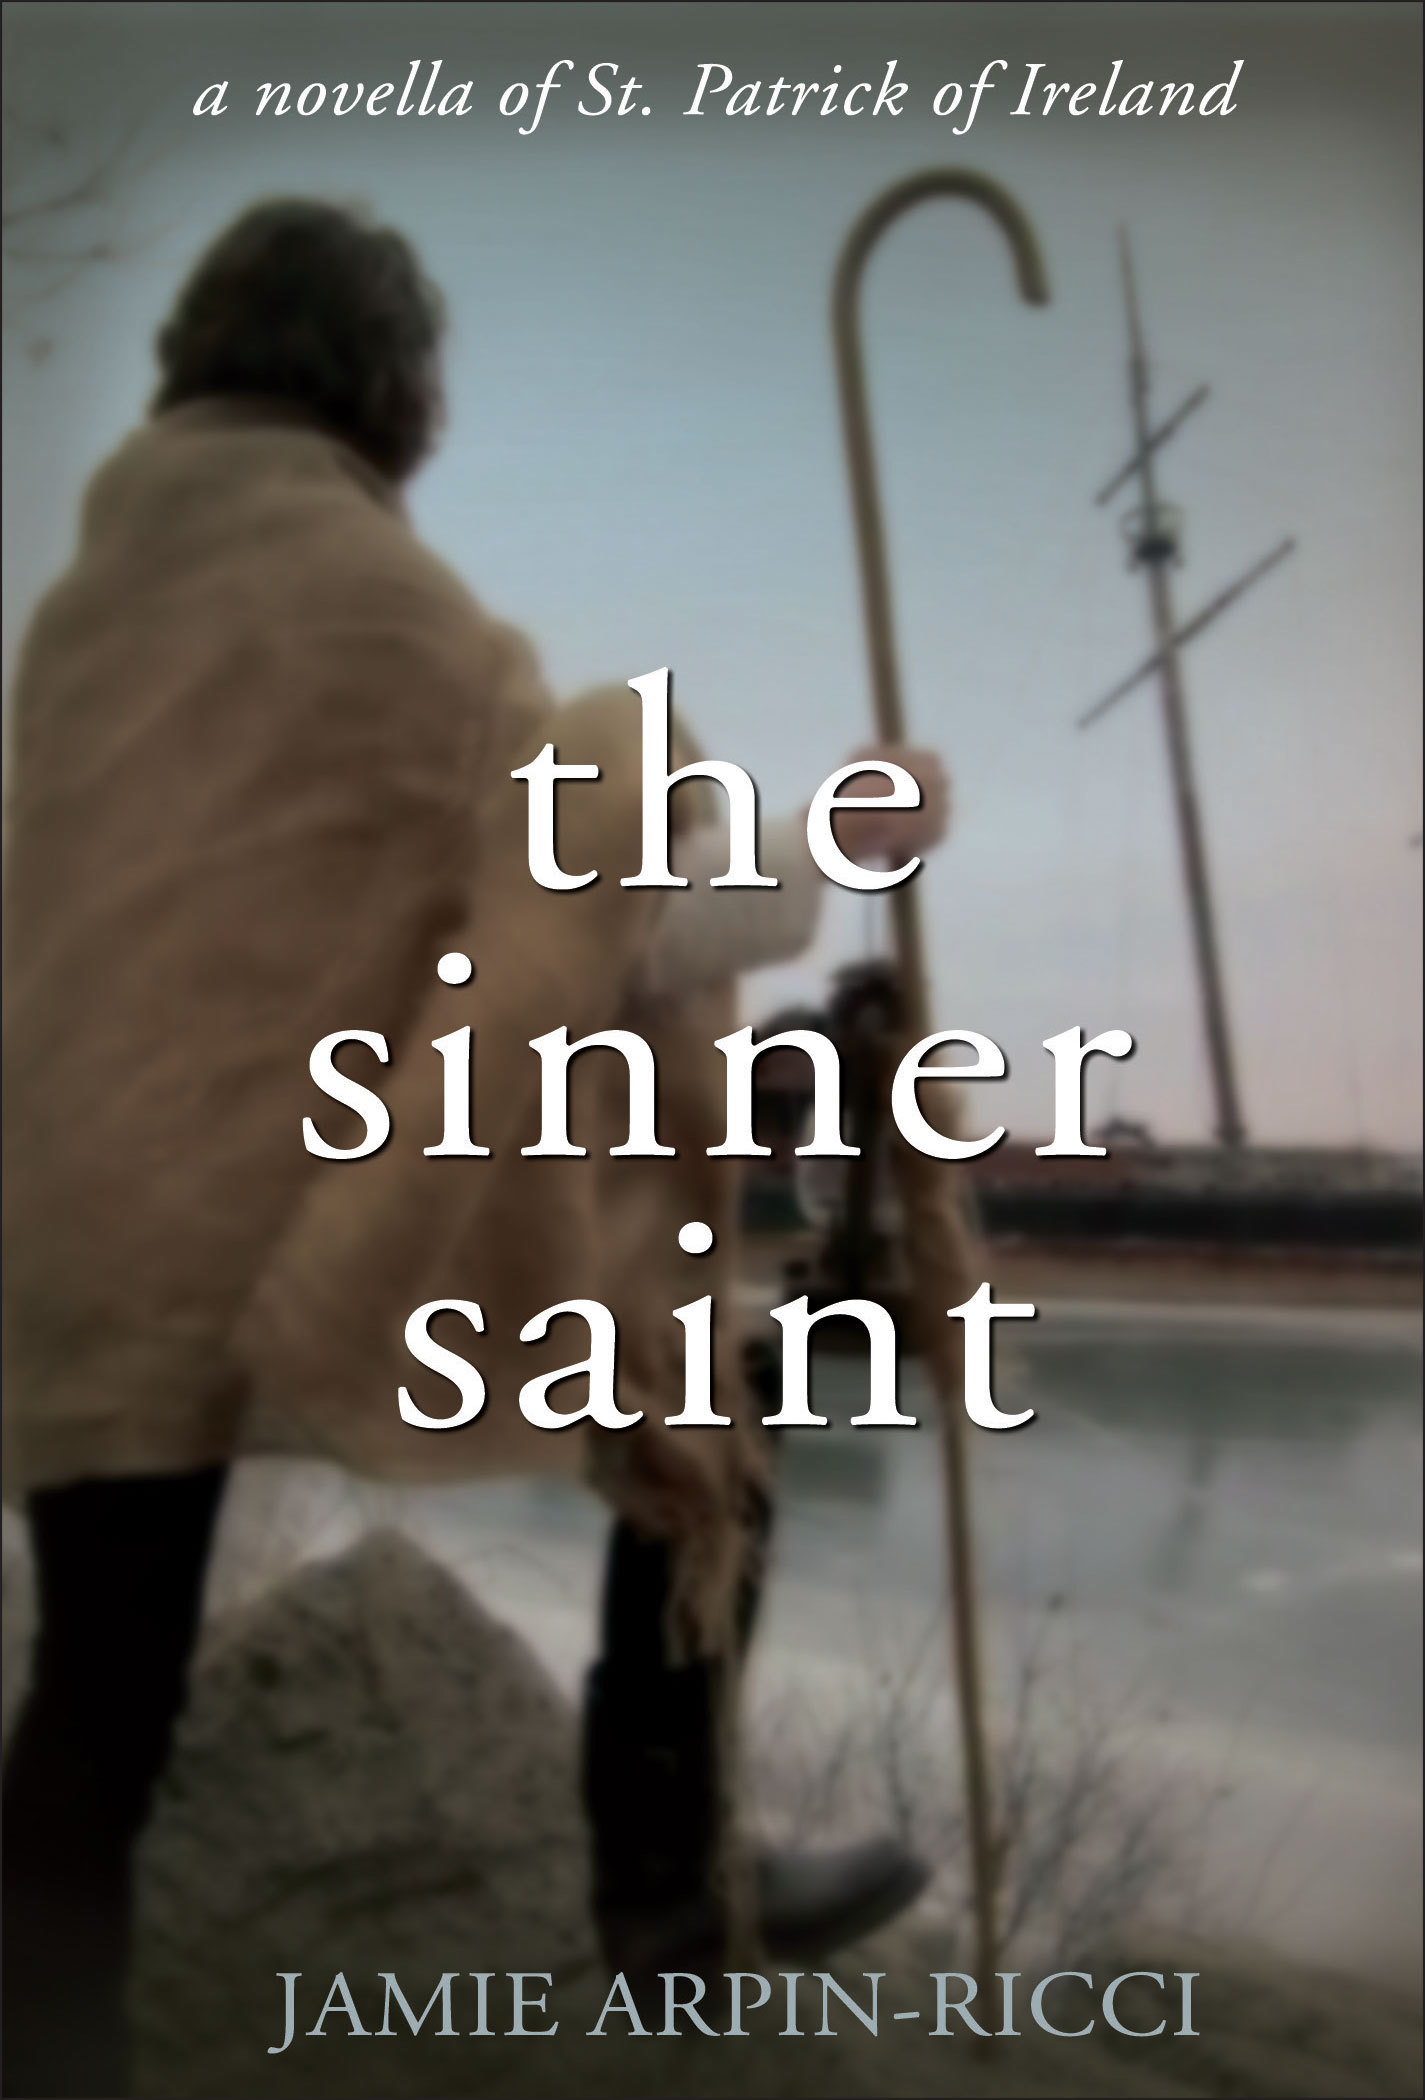 The Sinner Saint: A Novella of St. Patrick of Ireland